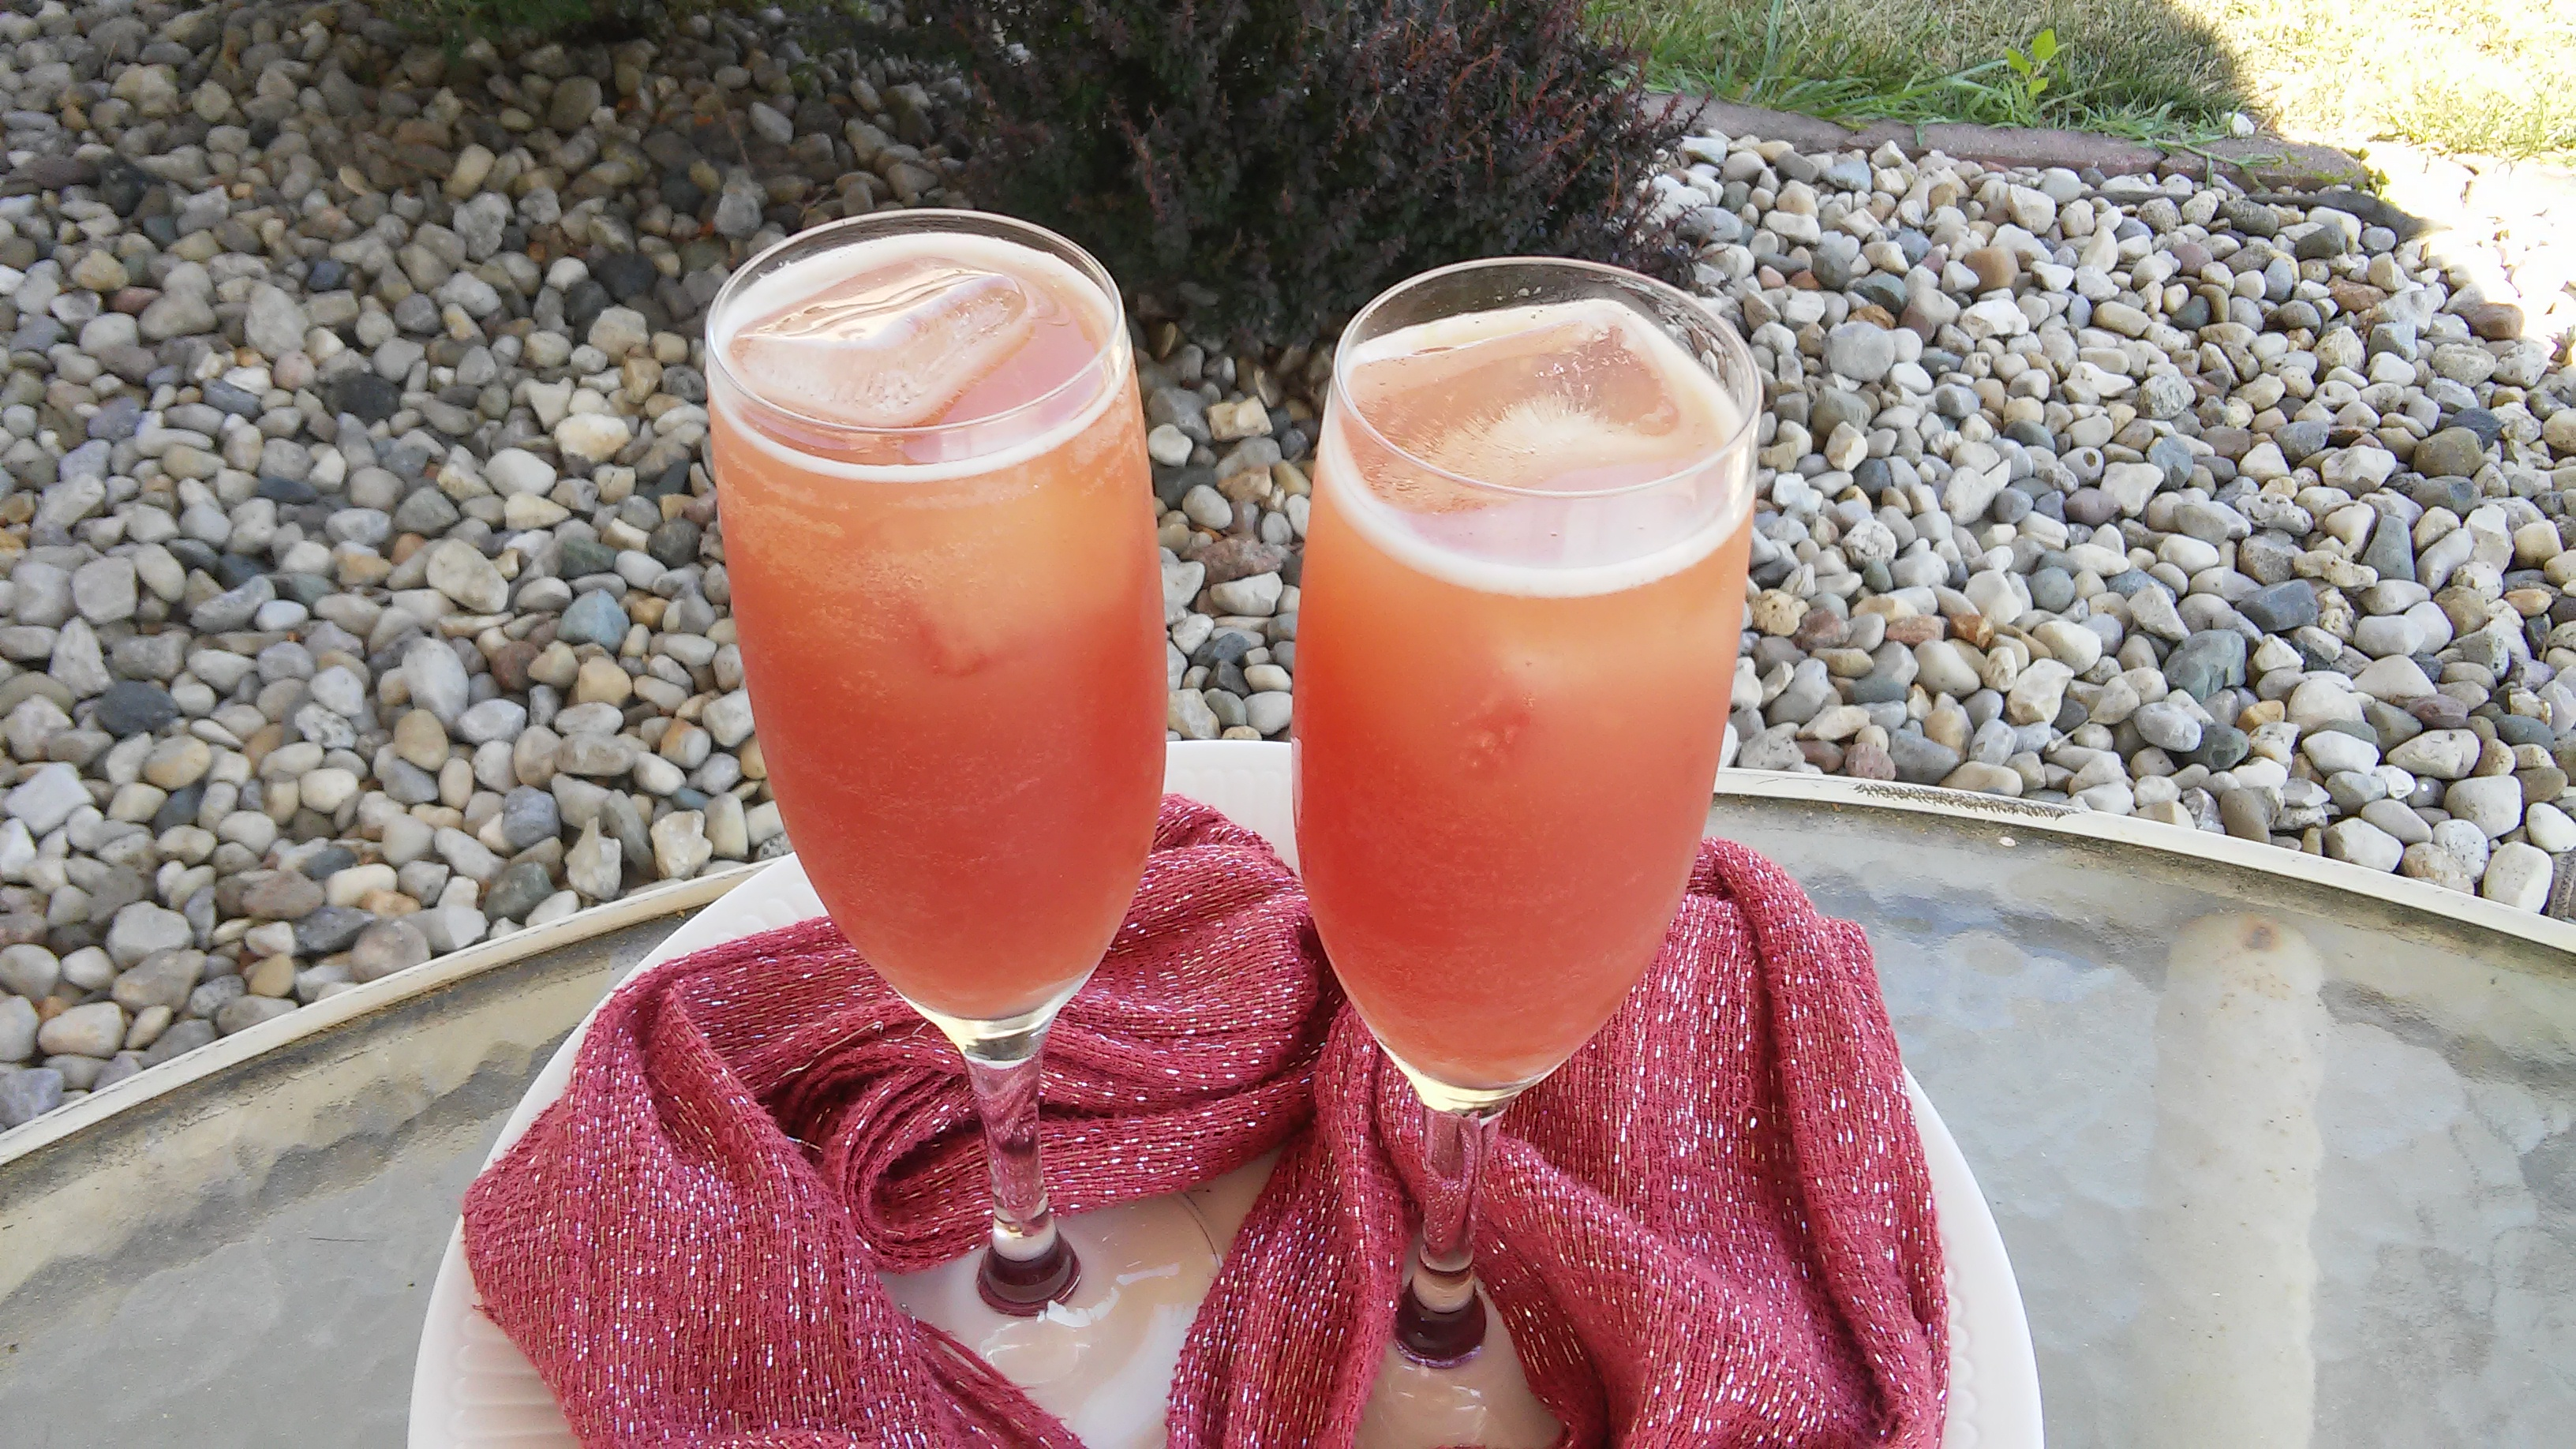 A terrific Christmas or New Year's Eve party mocktail, this fizzy, fun fake Champagne cocktail stars ginger ale and cranberry juice along with OJ concentrate and pineapple juice.